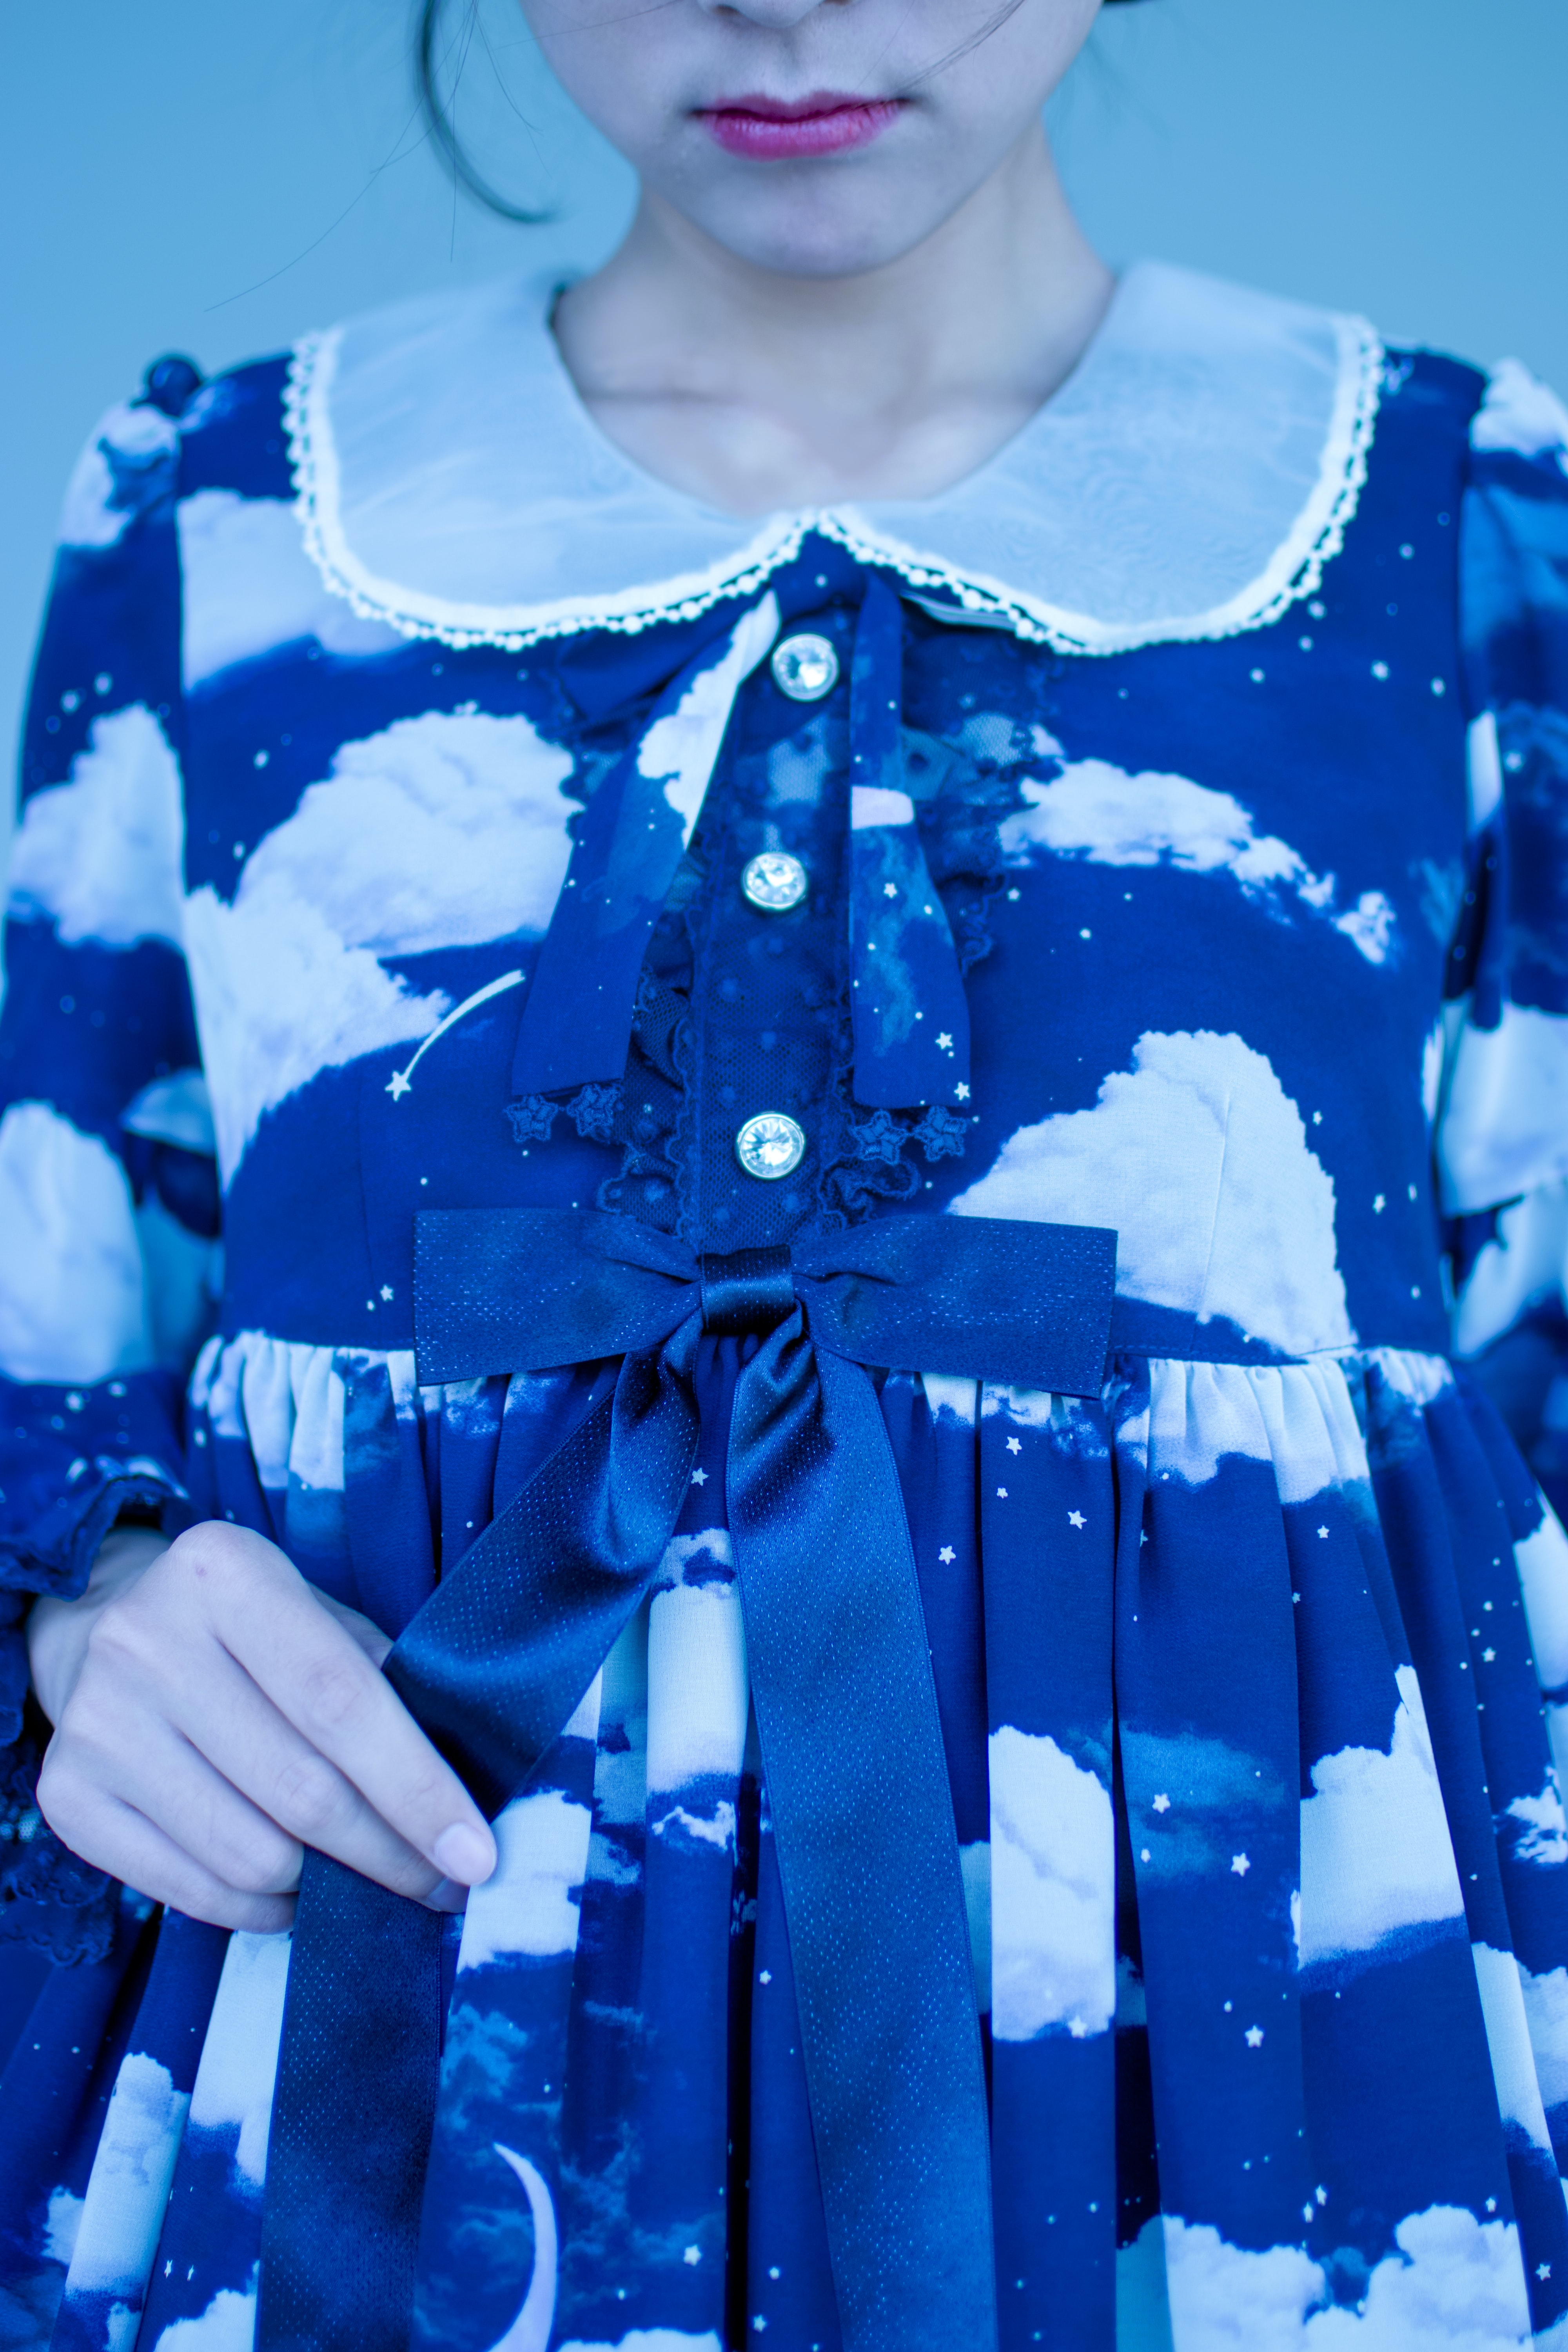 closeup photo of woman in blue and white collared long-sleeved dress